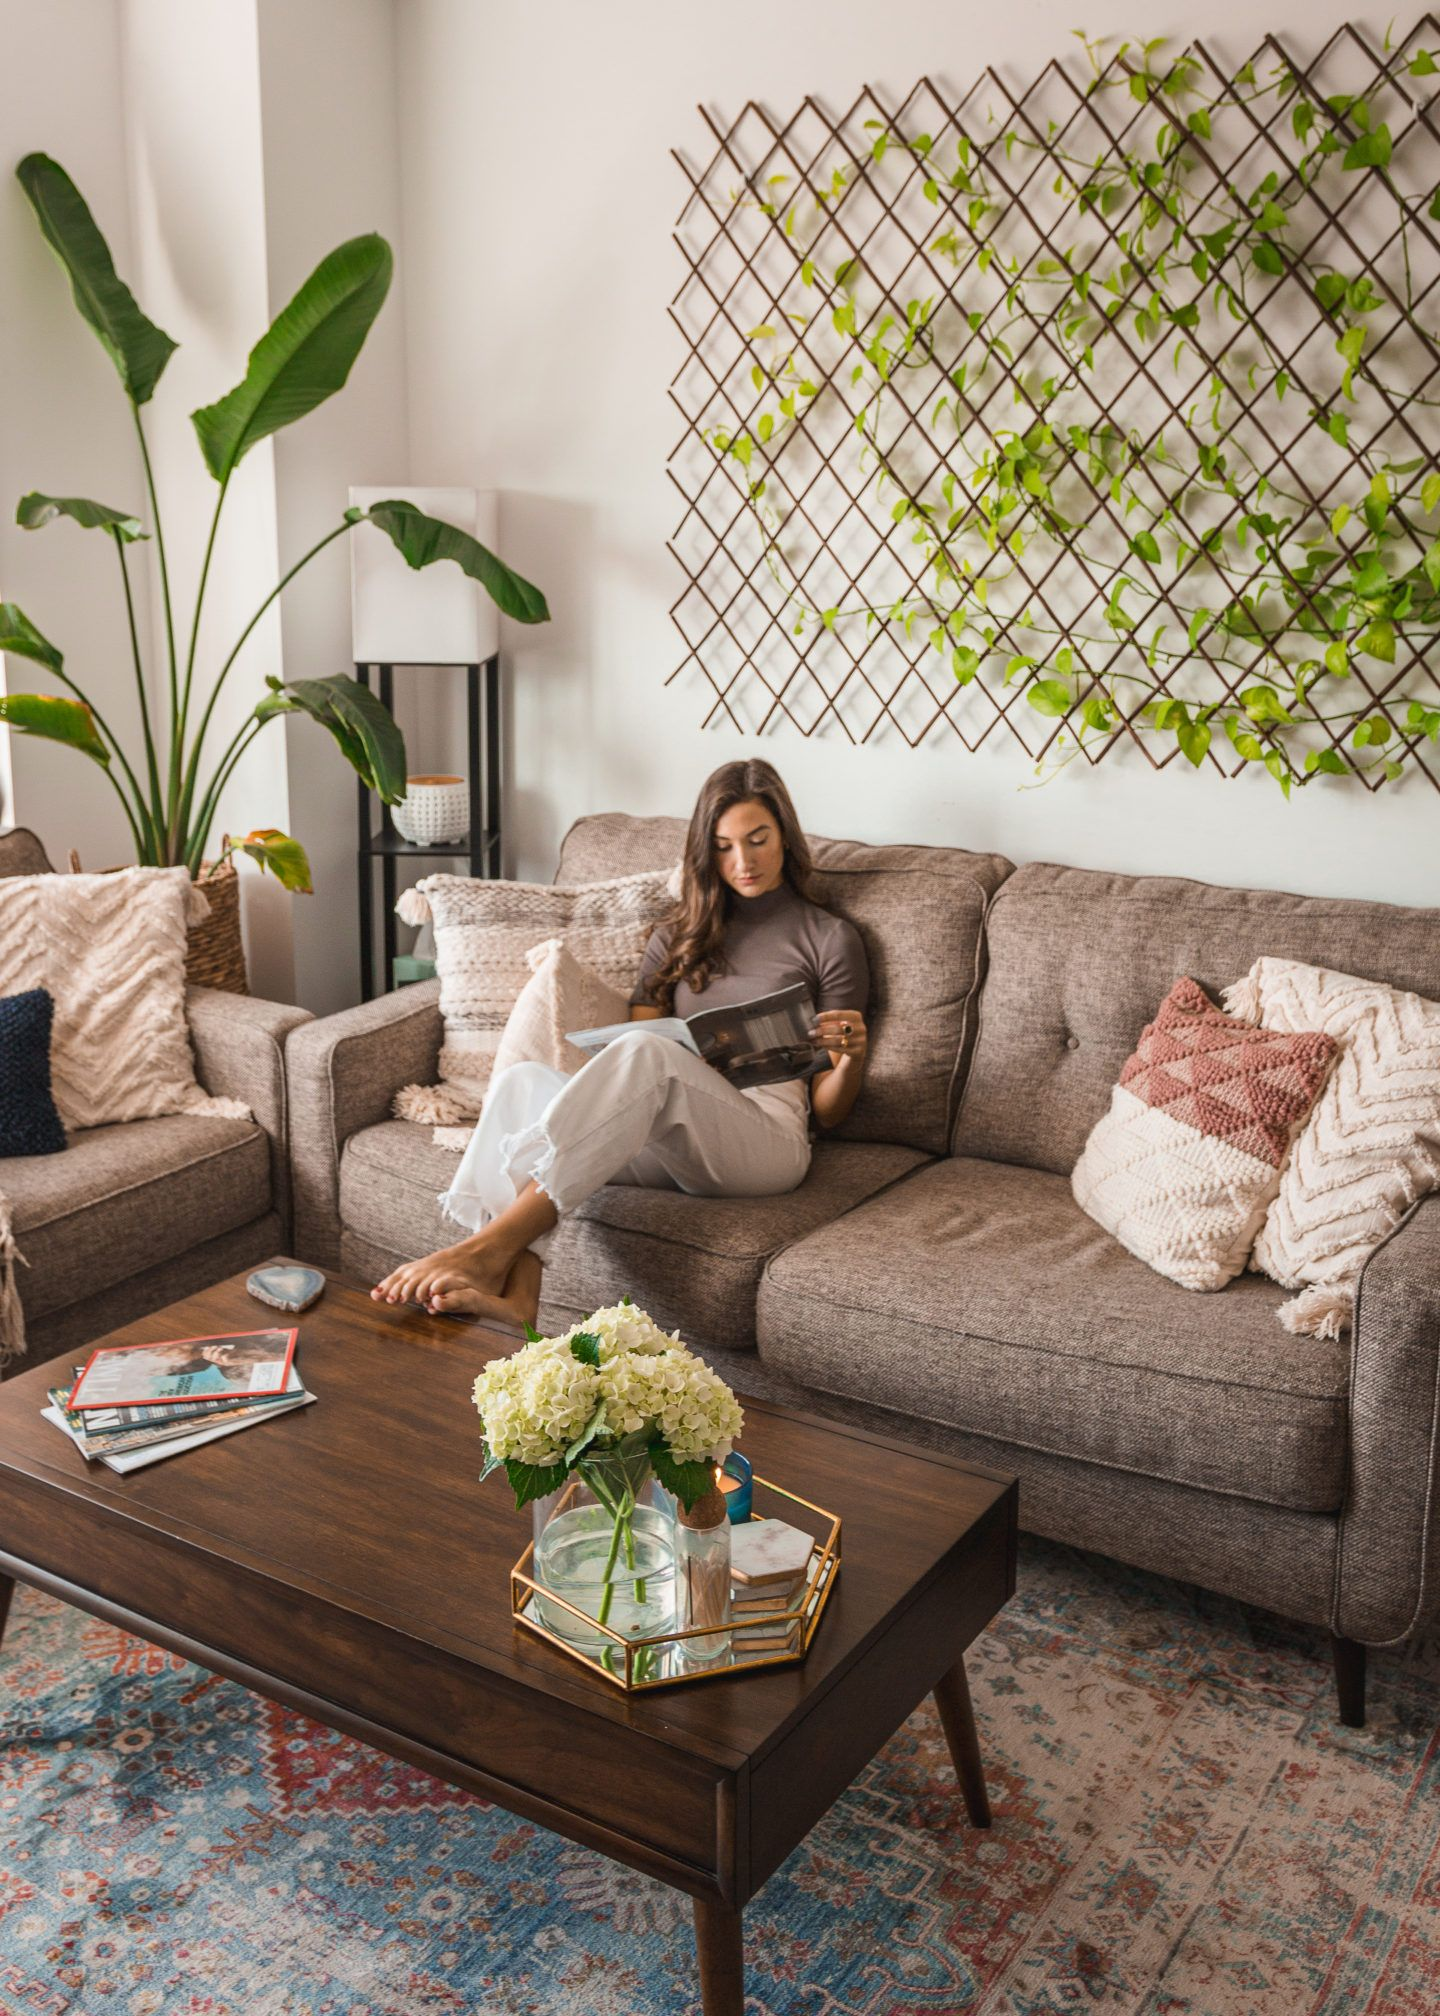 Brooklyn Apartment Tour | Furniture, Decor + House Plants - Melissa Frusco